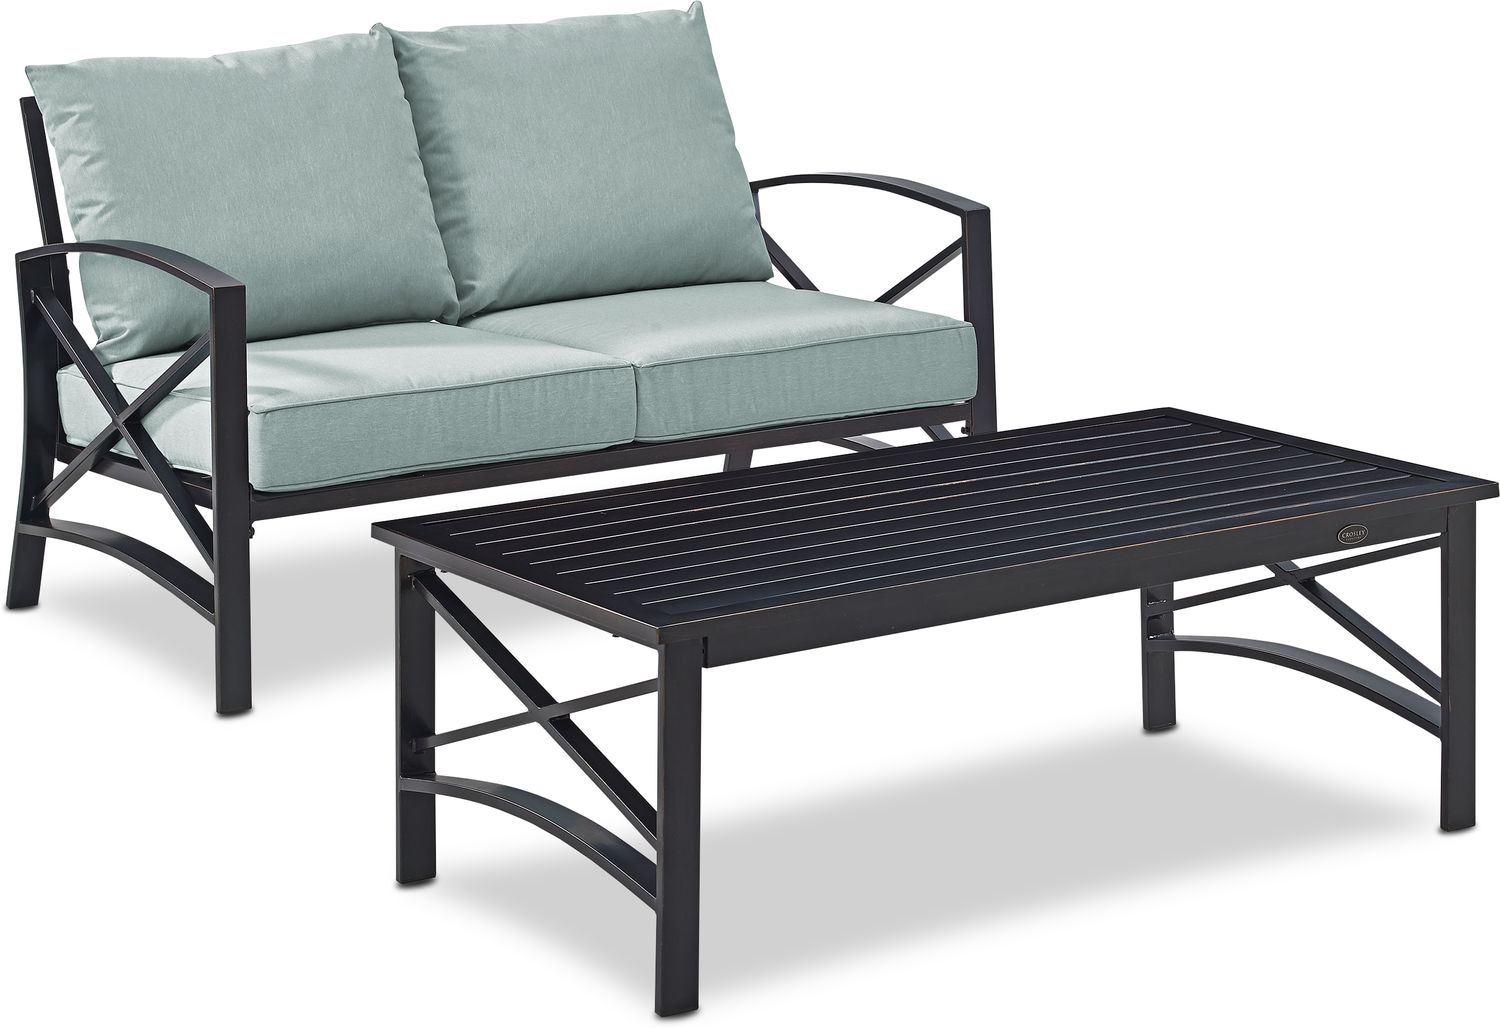 Outdoor Furniture - Clarion Outdoor Loveseat and Coffee Table Set